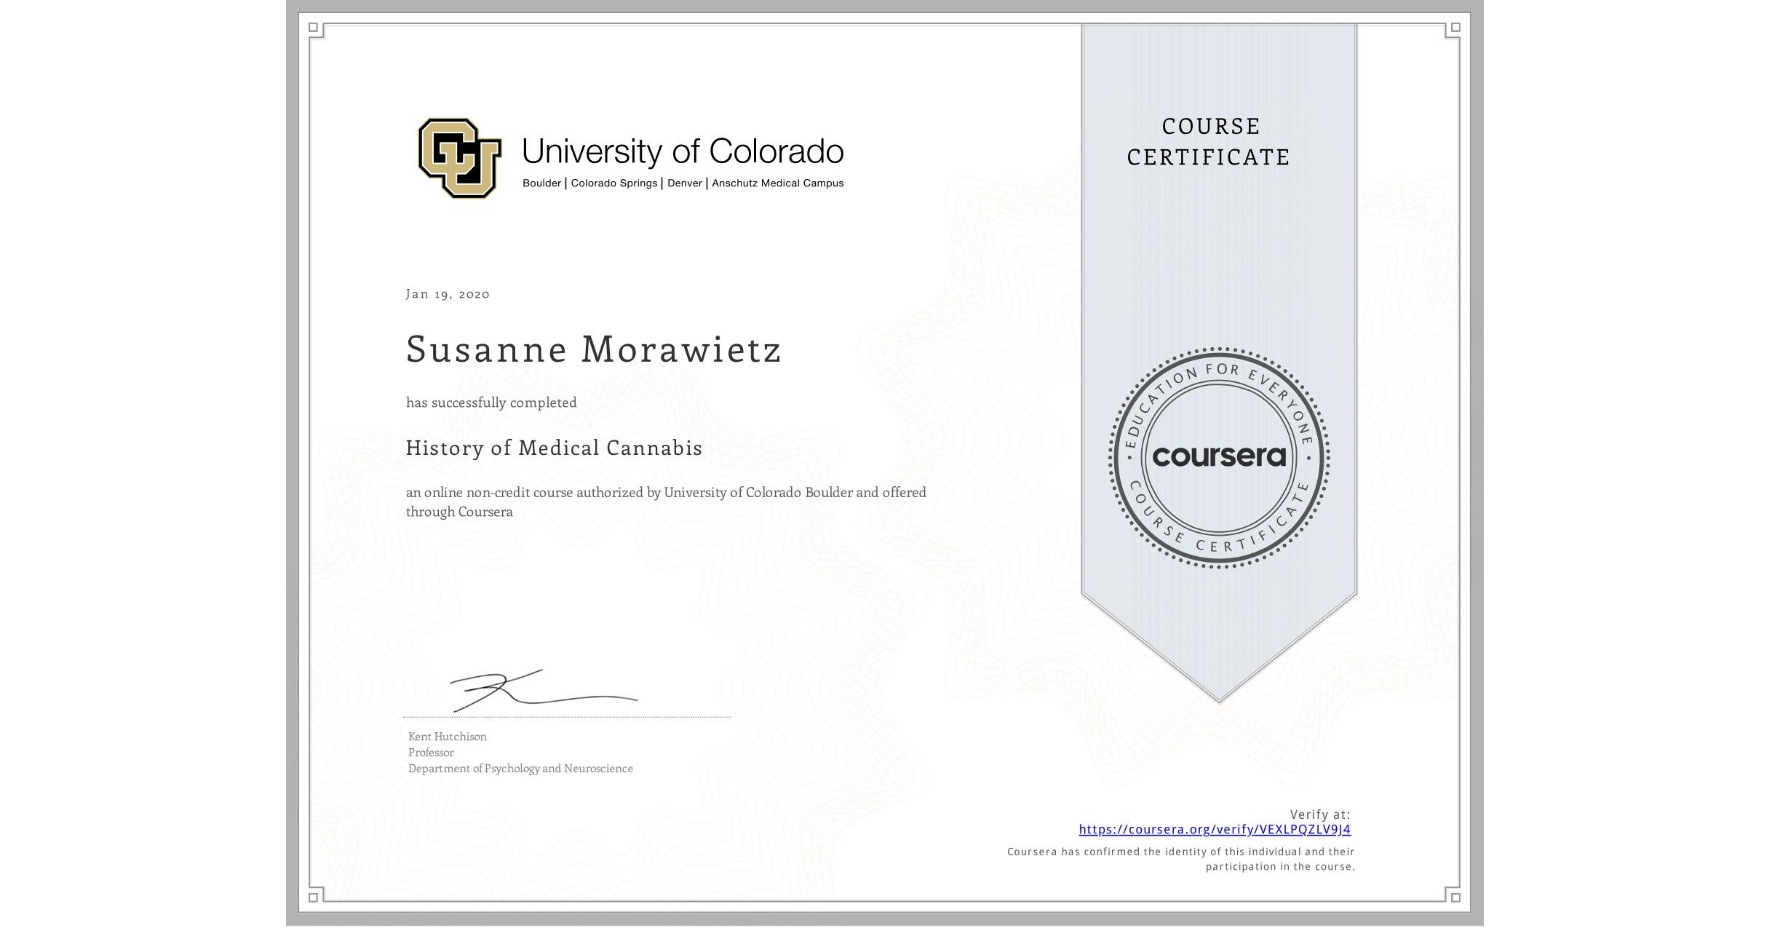 View certificate for Susanne Morawietz, History of Medical Cannabis, an online non-credit course authorized by University of Colorado Boulder and offered through Coursera